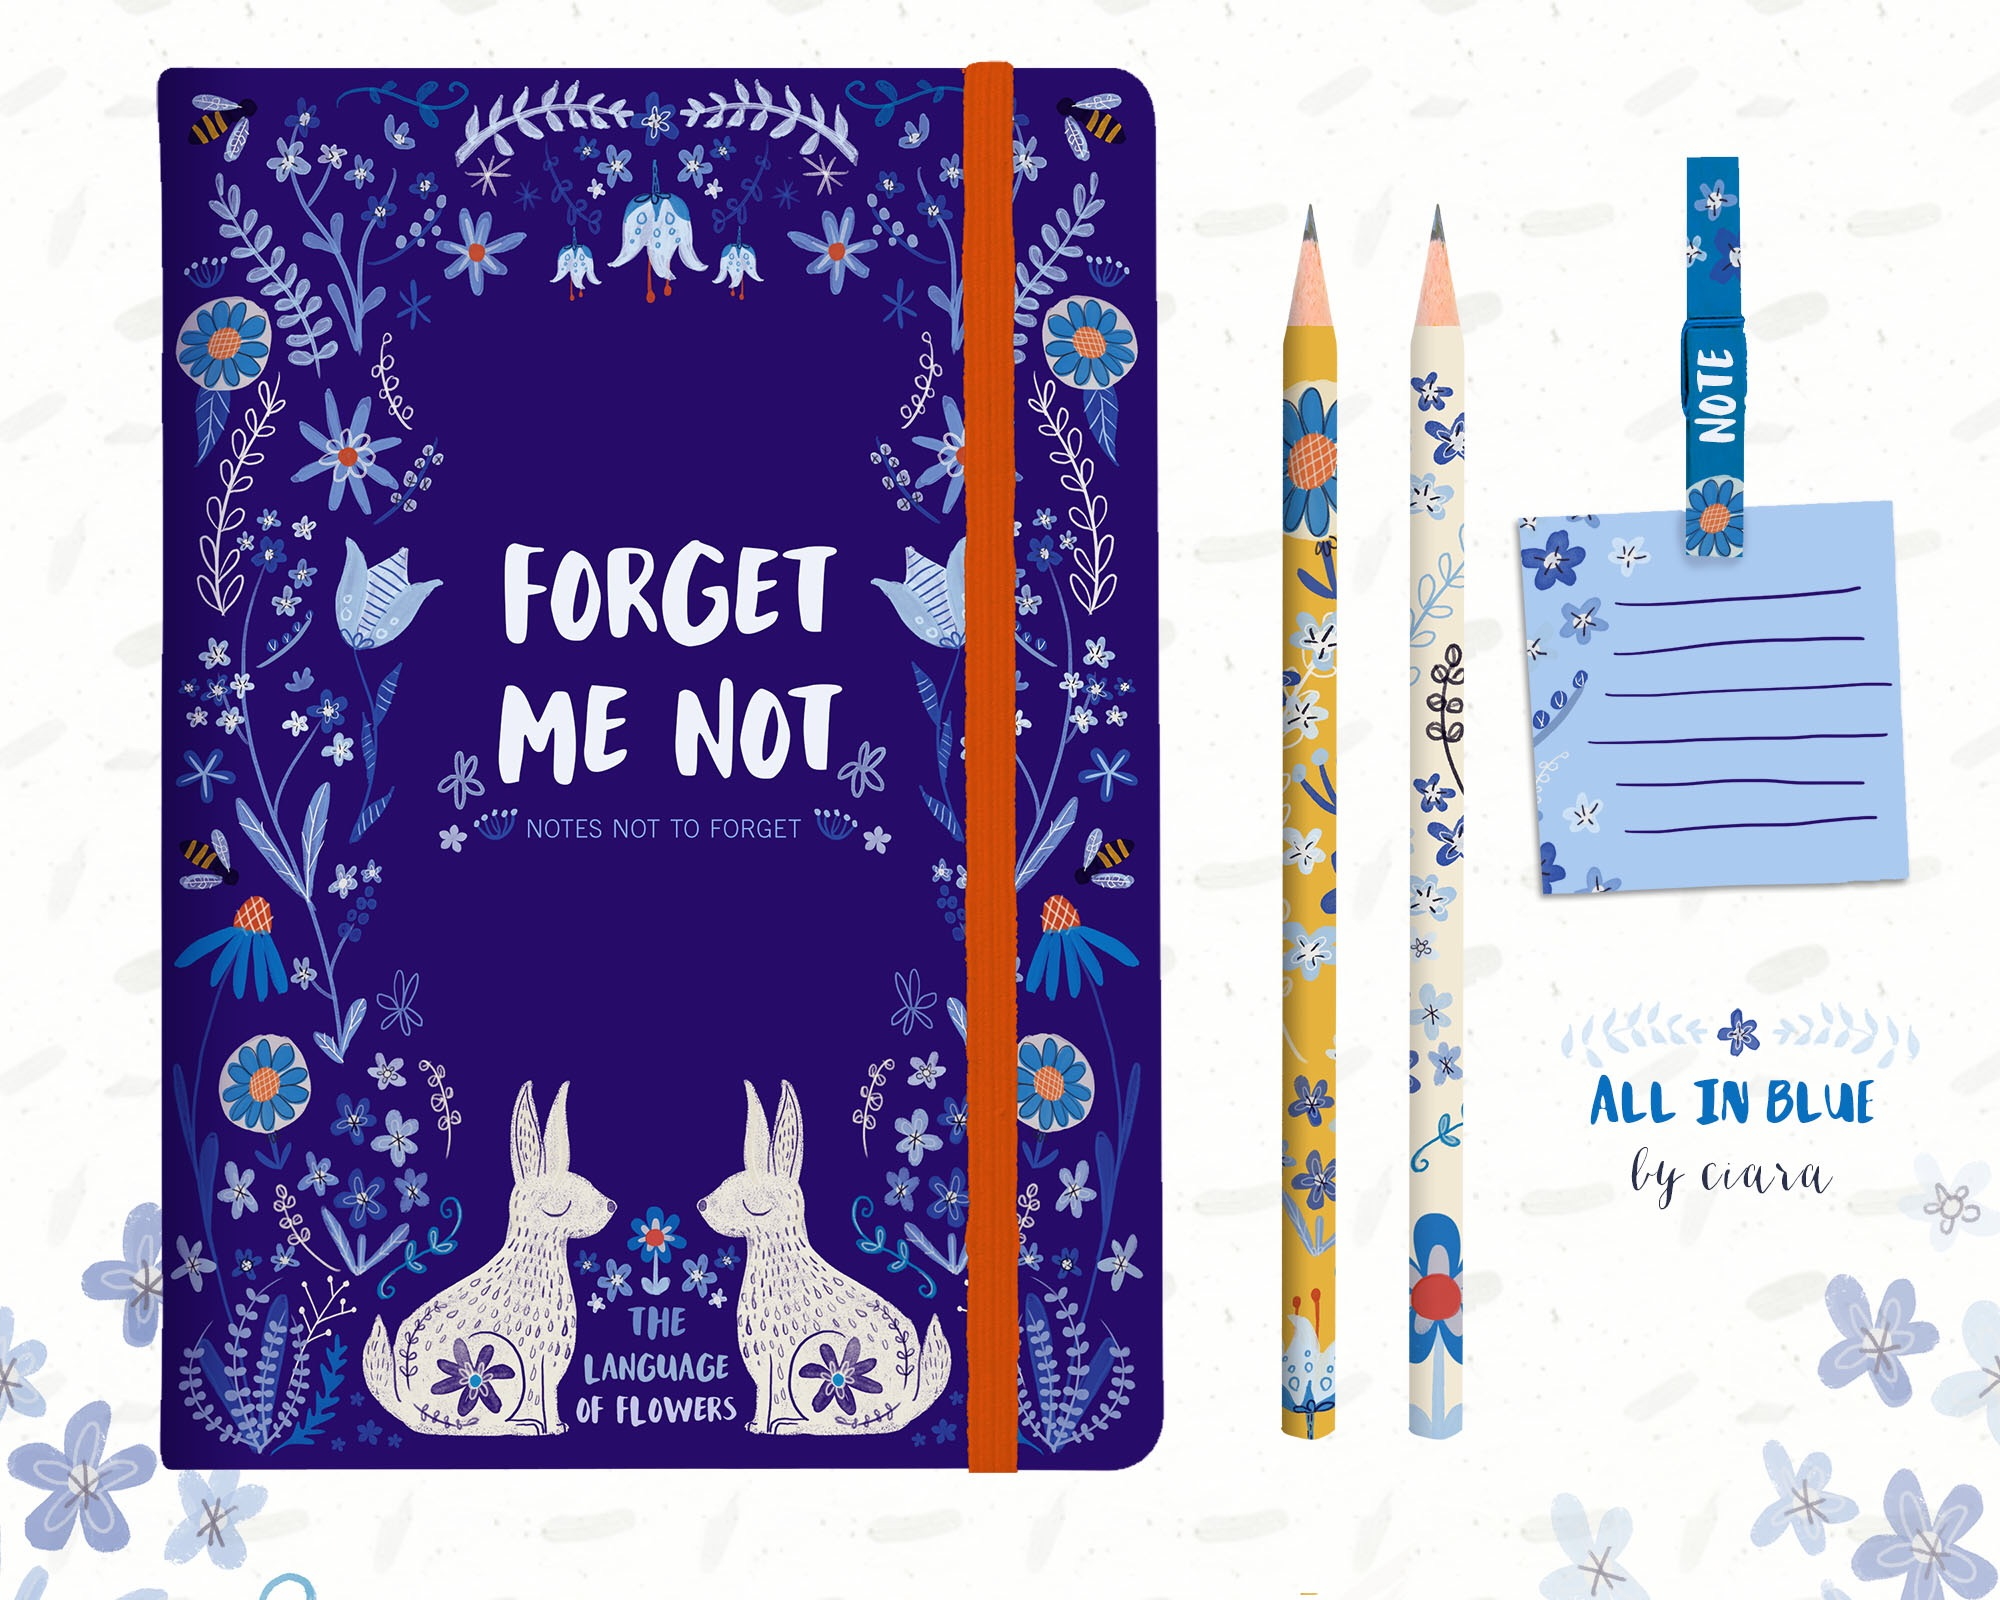 Expanded to pencils, pet and small notes.